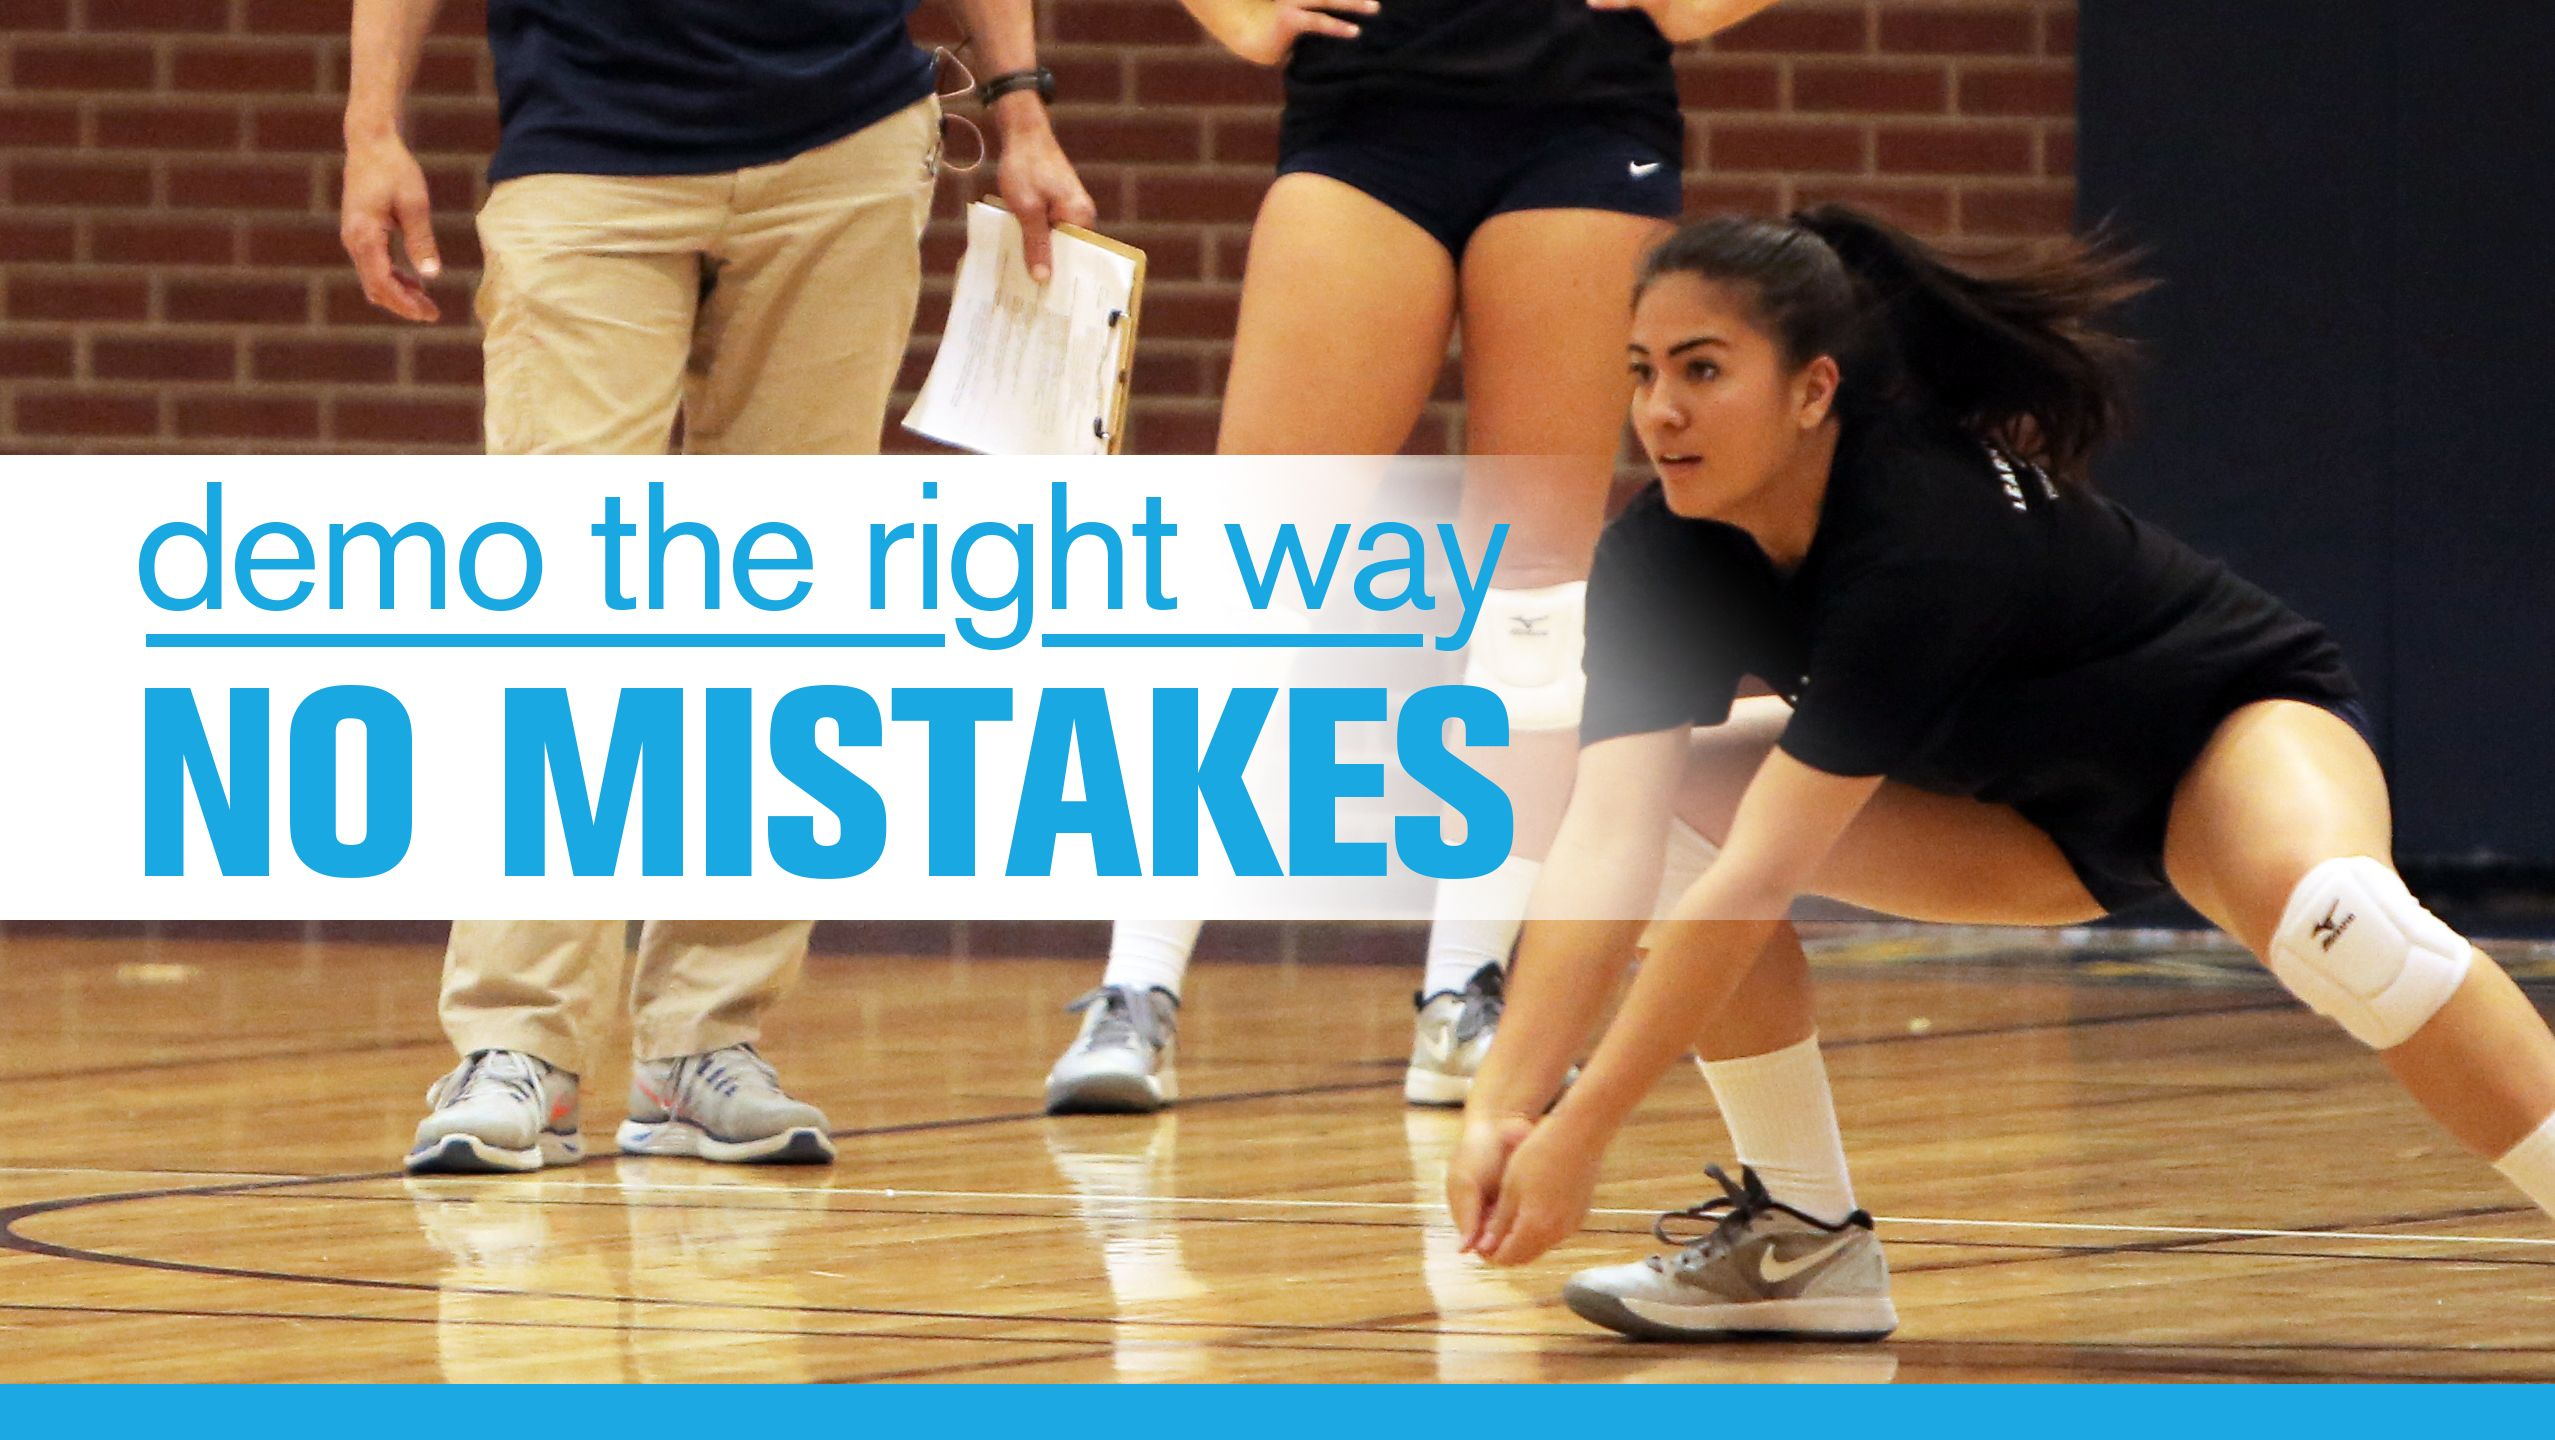 Demo The Right Way Don T Show Mistakes The Art Of Coaching Volleyball Volleyball Skills Coaching Volleyball Coaching